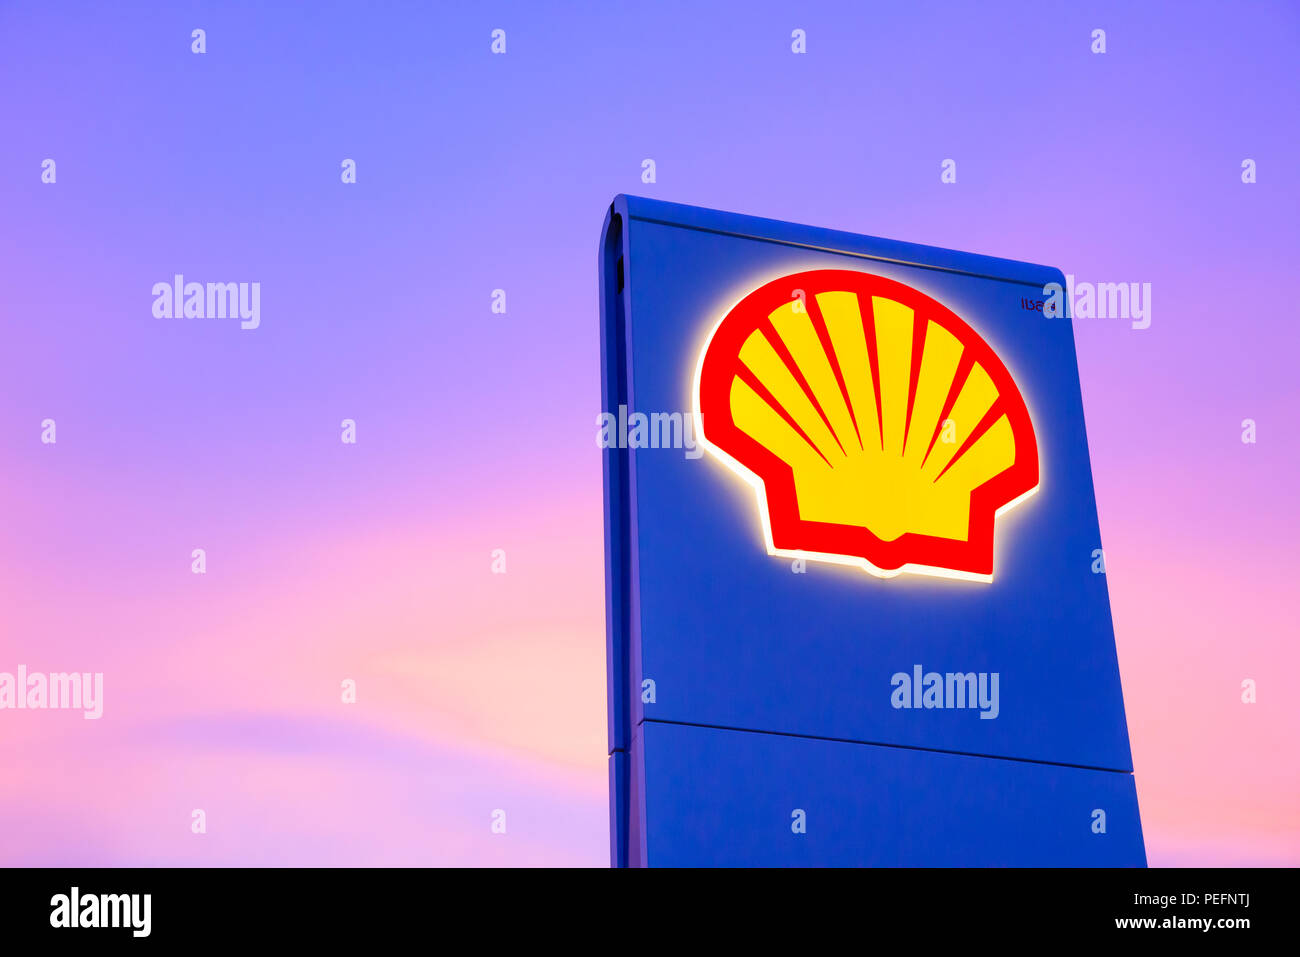 Chachoengsao, Thailand - Jan 28, 2018: Shell gas station logo with blue sky background during sunset. Royal Dutch Shell sold its Australian Shell reta - Stock Image